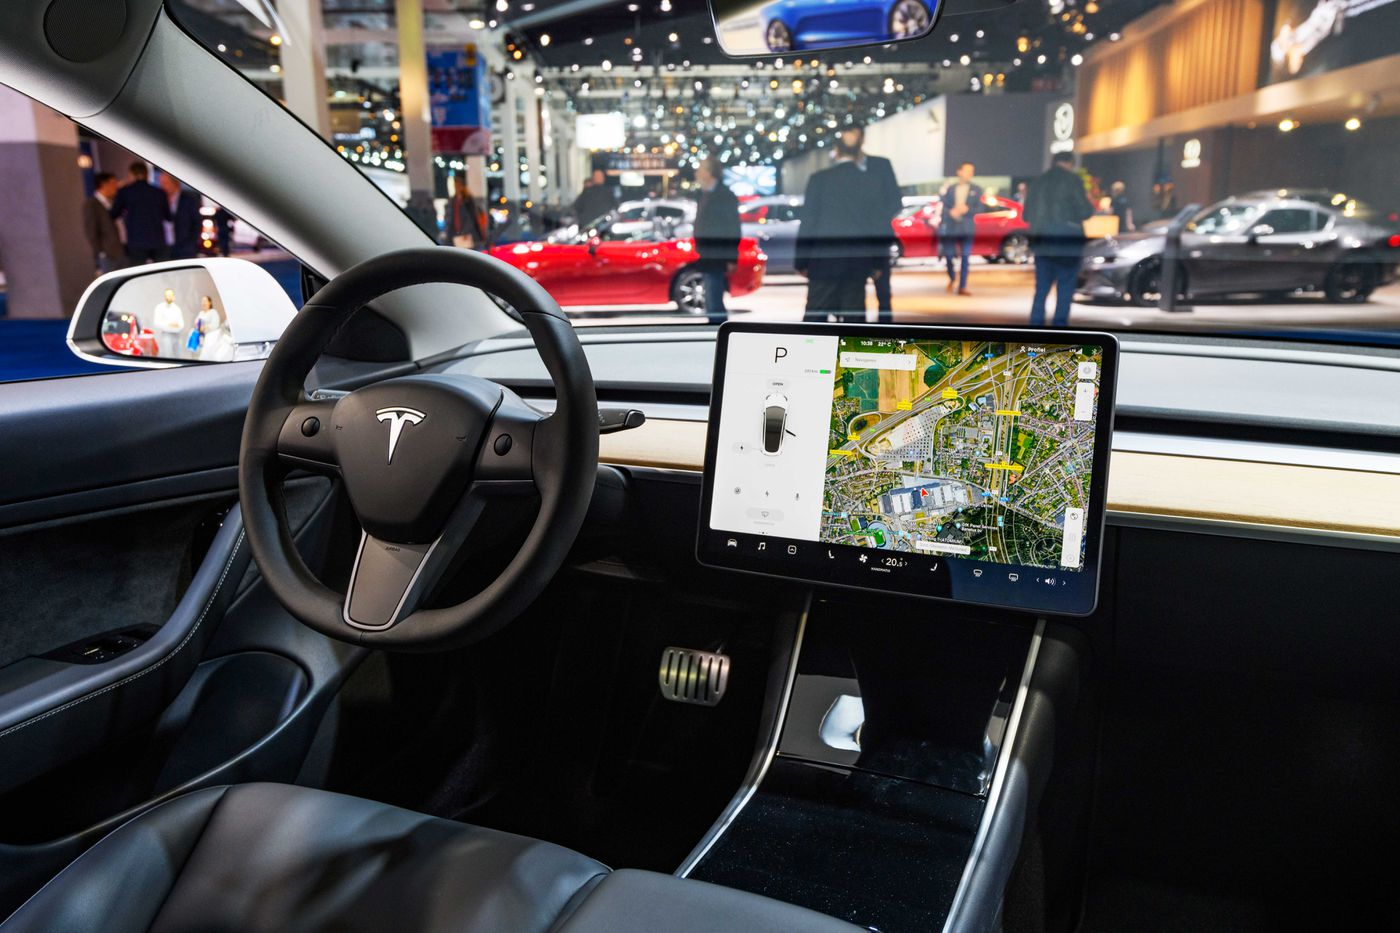 Self-driving cars from Tesla, Google, and others are still not here - Vox